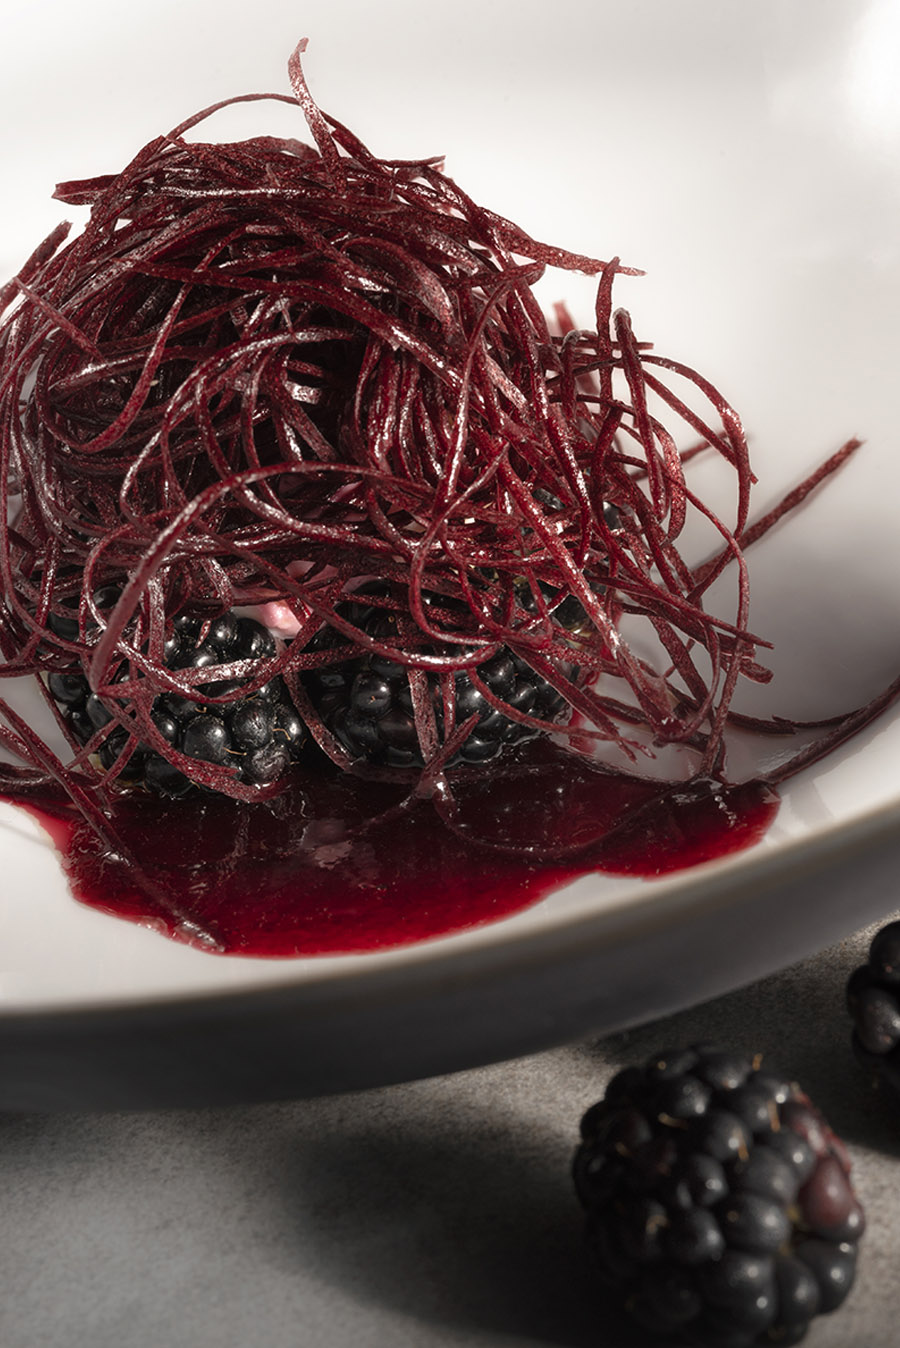 Blackberry by pastry chef Cédric Perret